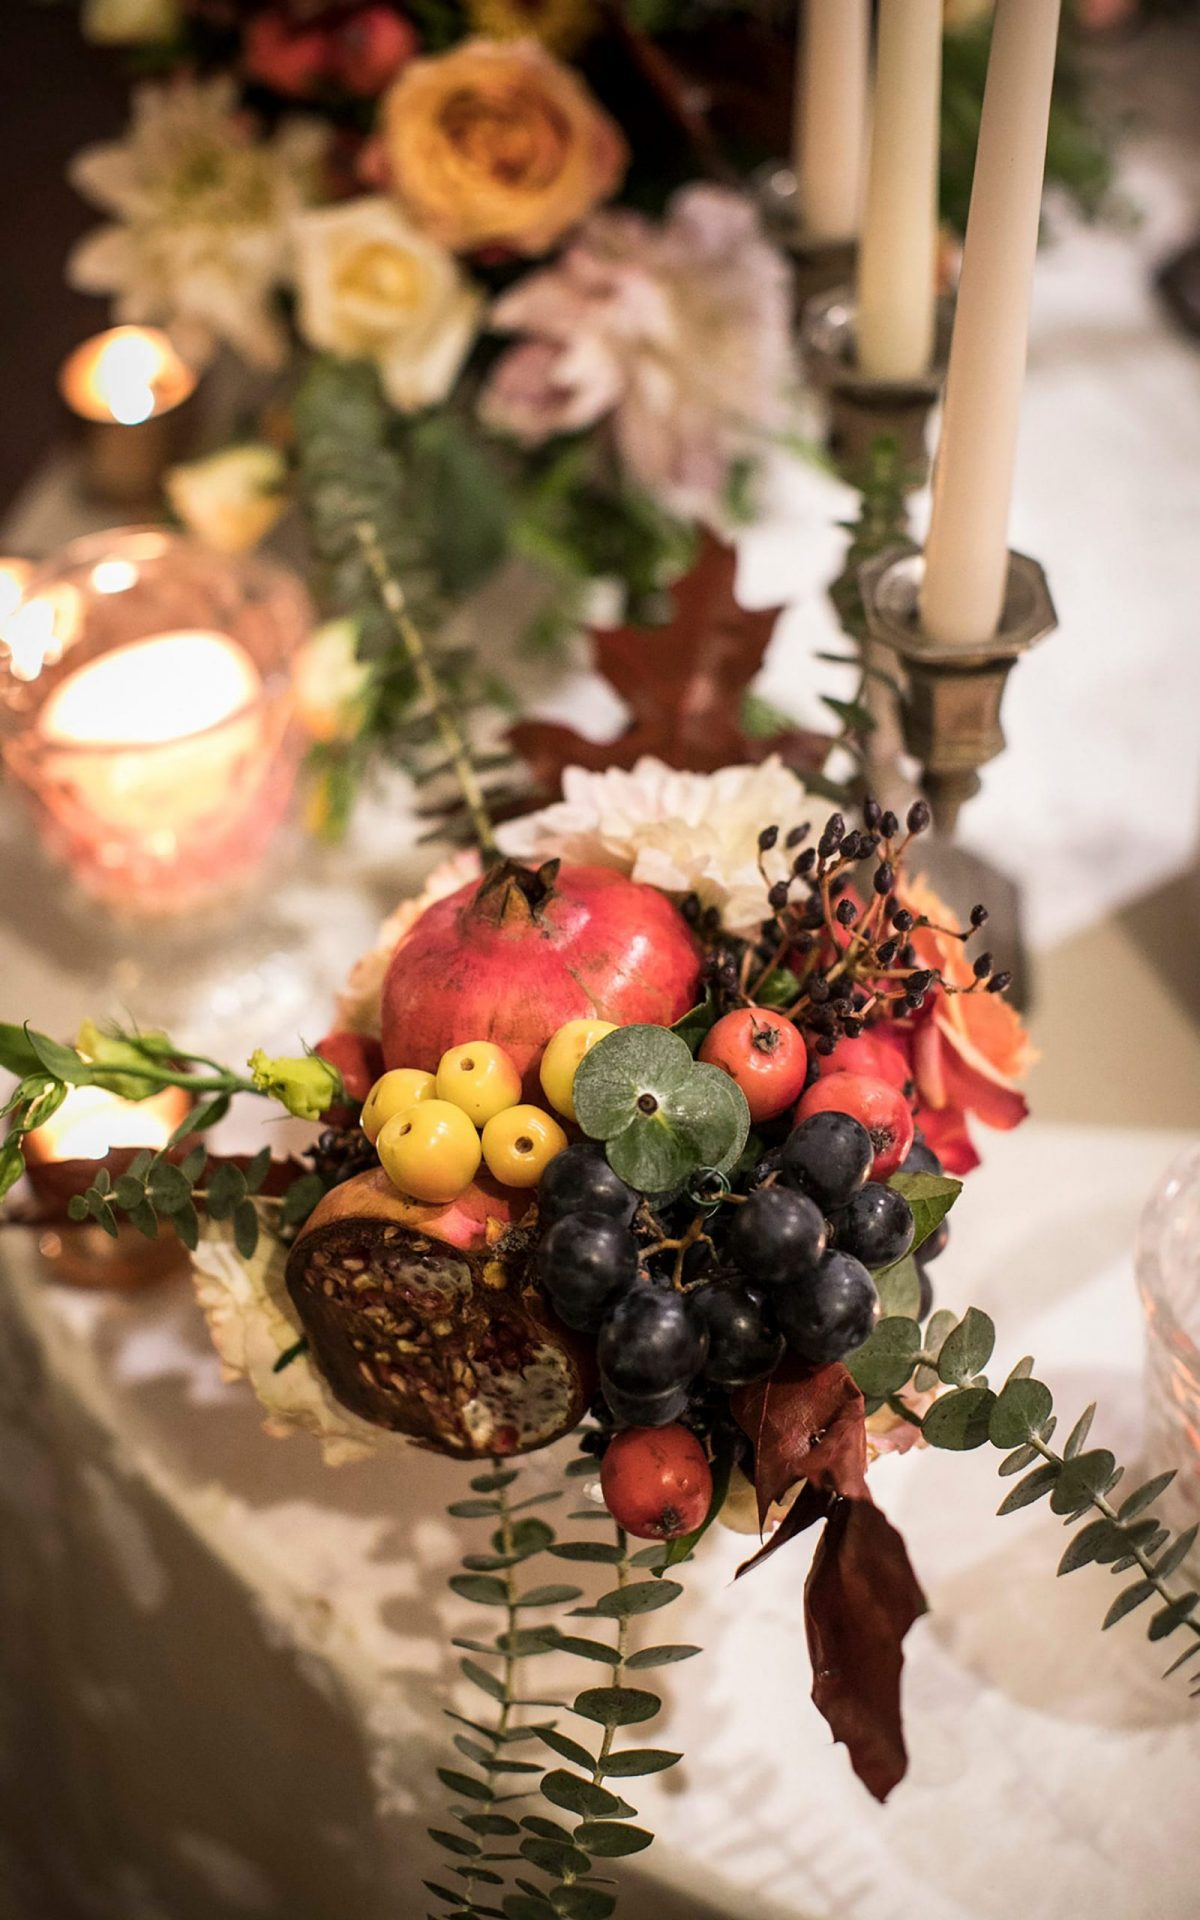 Su Gologone wedding, whimsical table decor